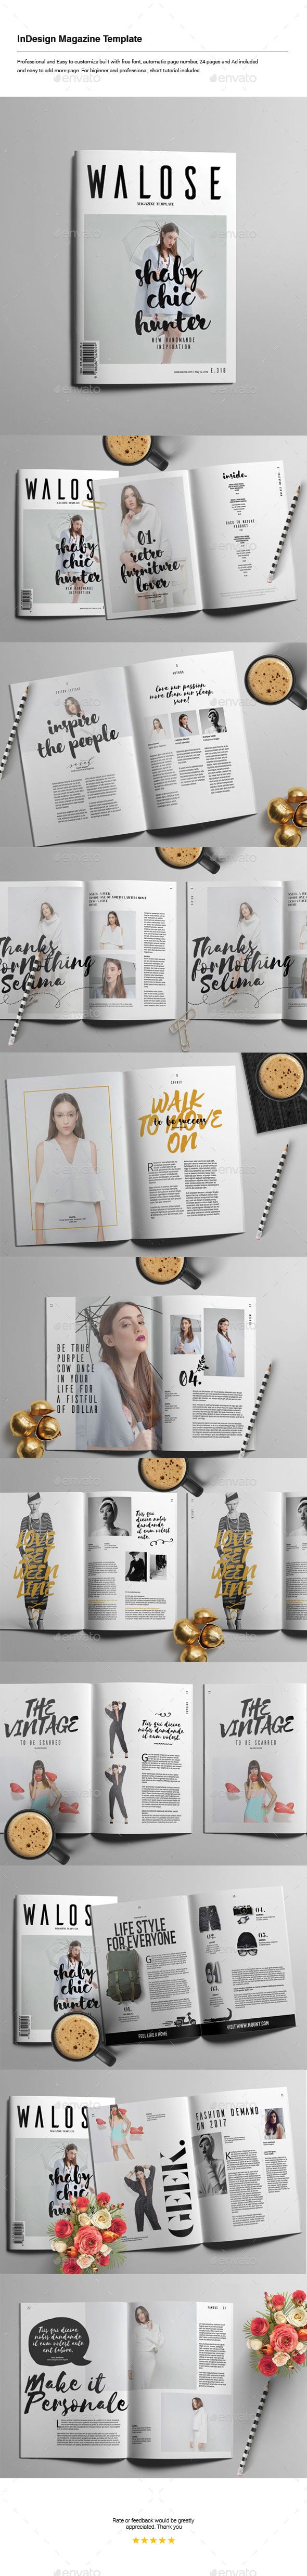 Indesign Magazine Template  #fresh #clean #classic • Click here to download ! http://graphicriver.net/item/indesign-magazine-template/15964882?ref=pxcr